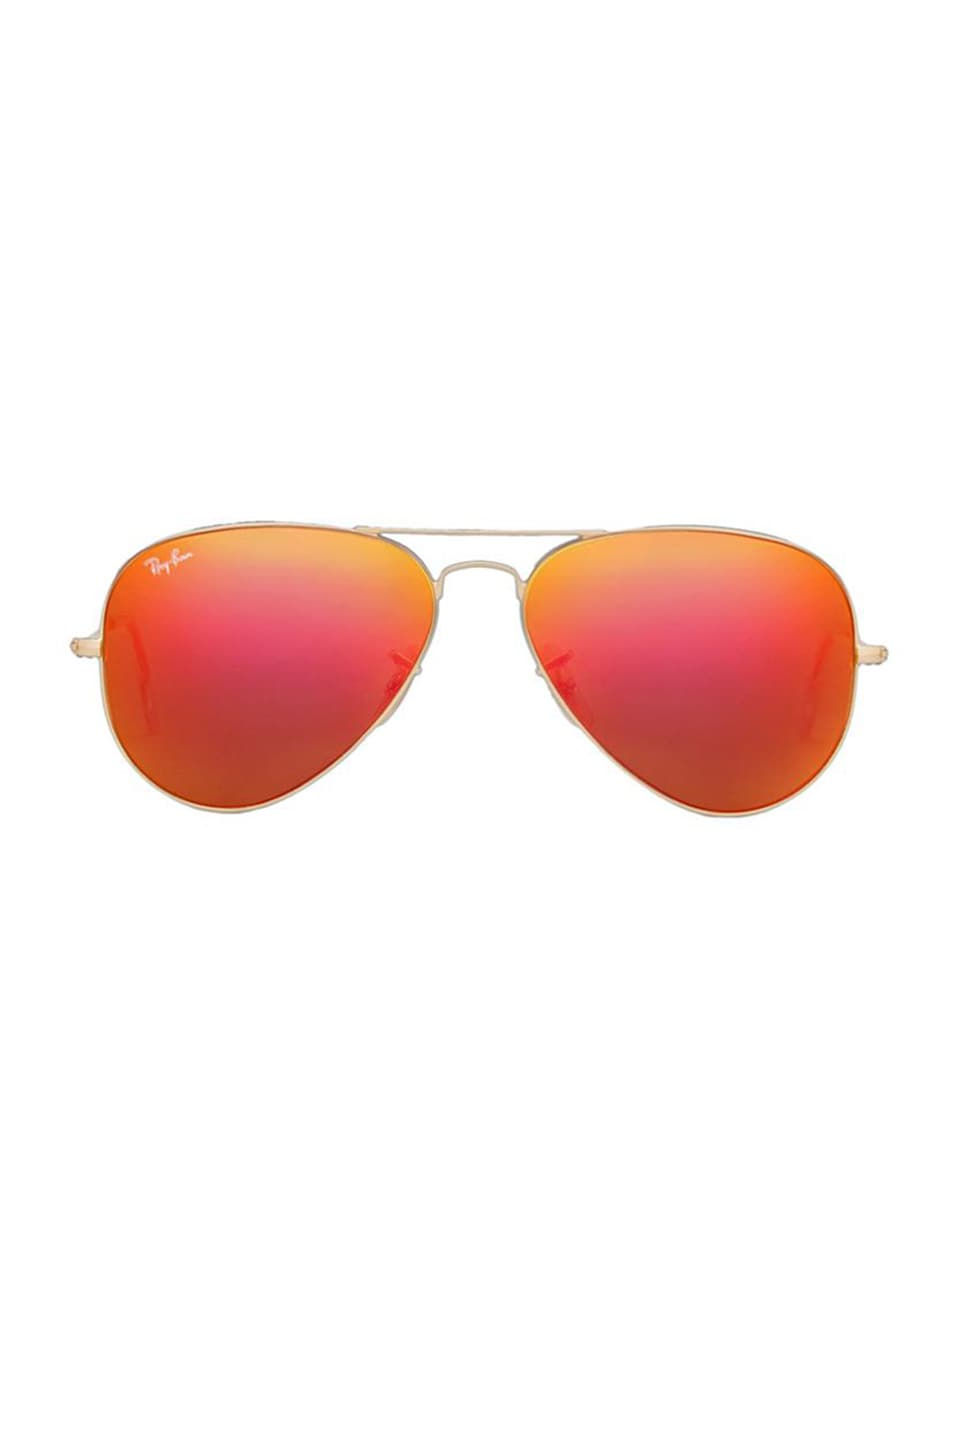 Ray-Ban Metal Flash Lense Aviator in Matte Gold & Orange Flash